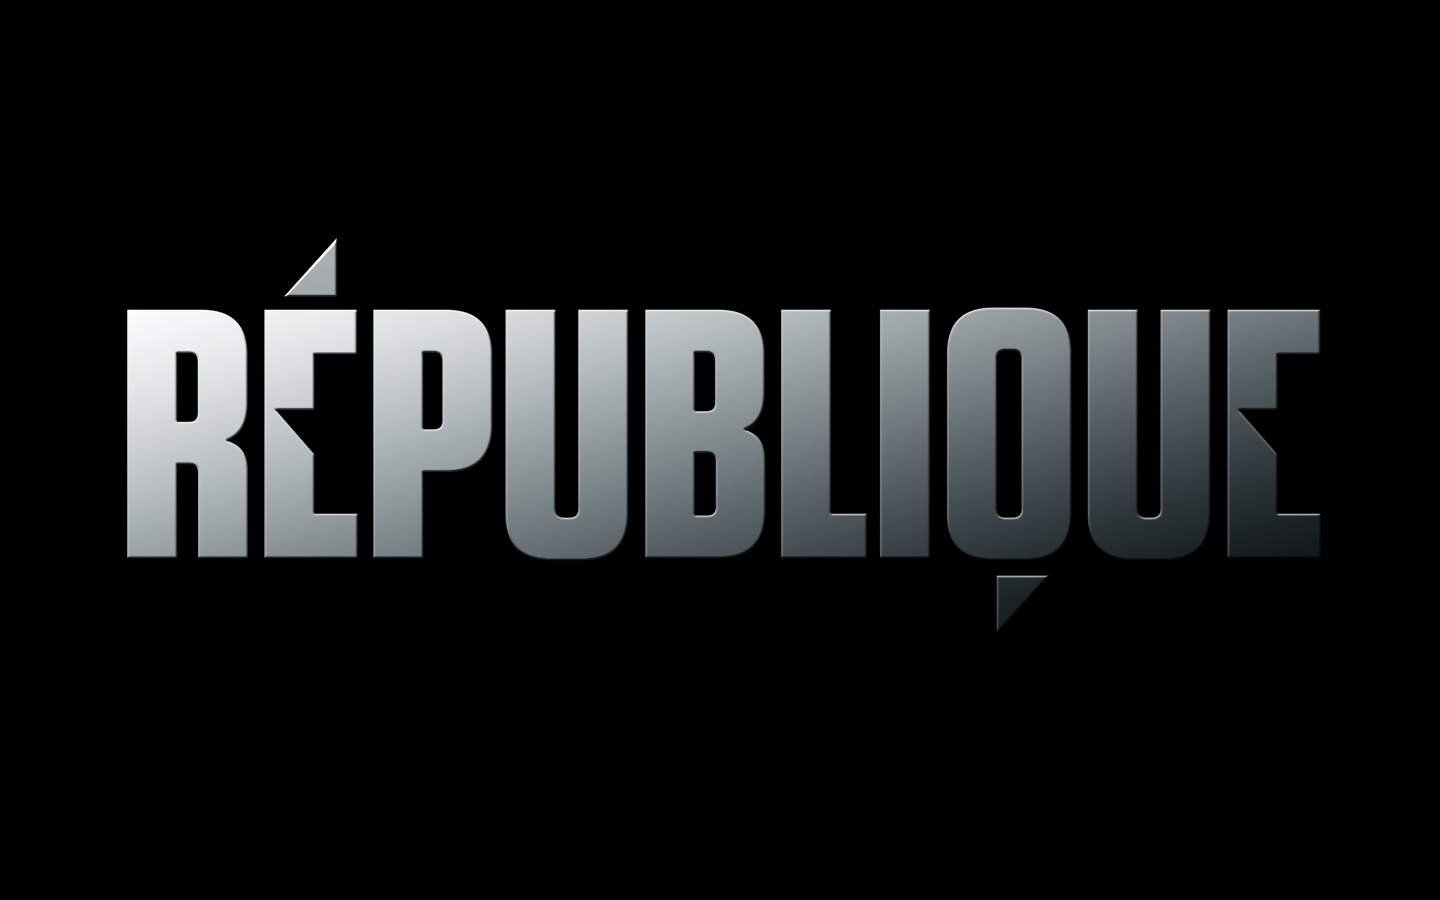 Republique exceeds its $500,000 Kickstarter goal in a dramatic finish